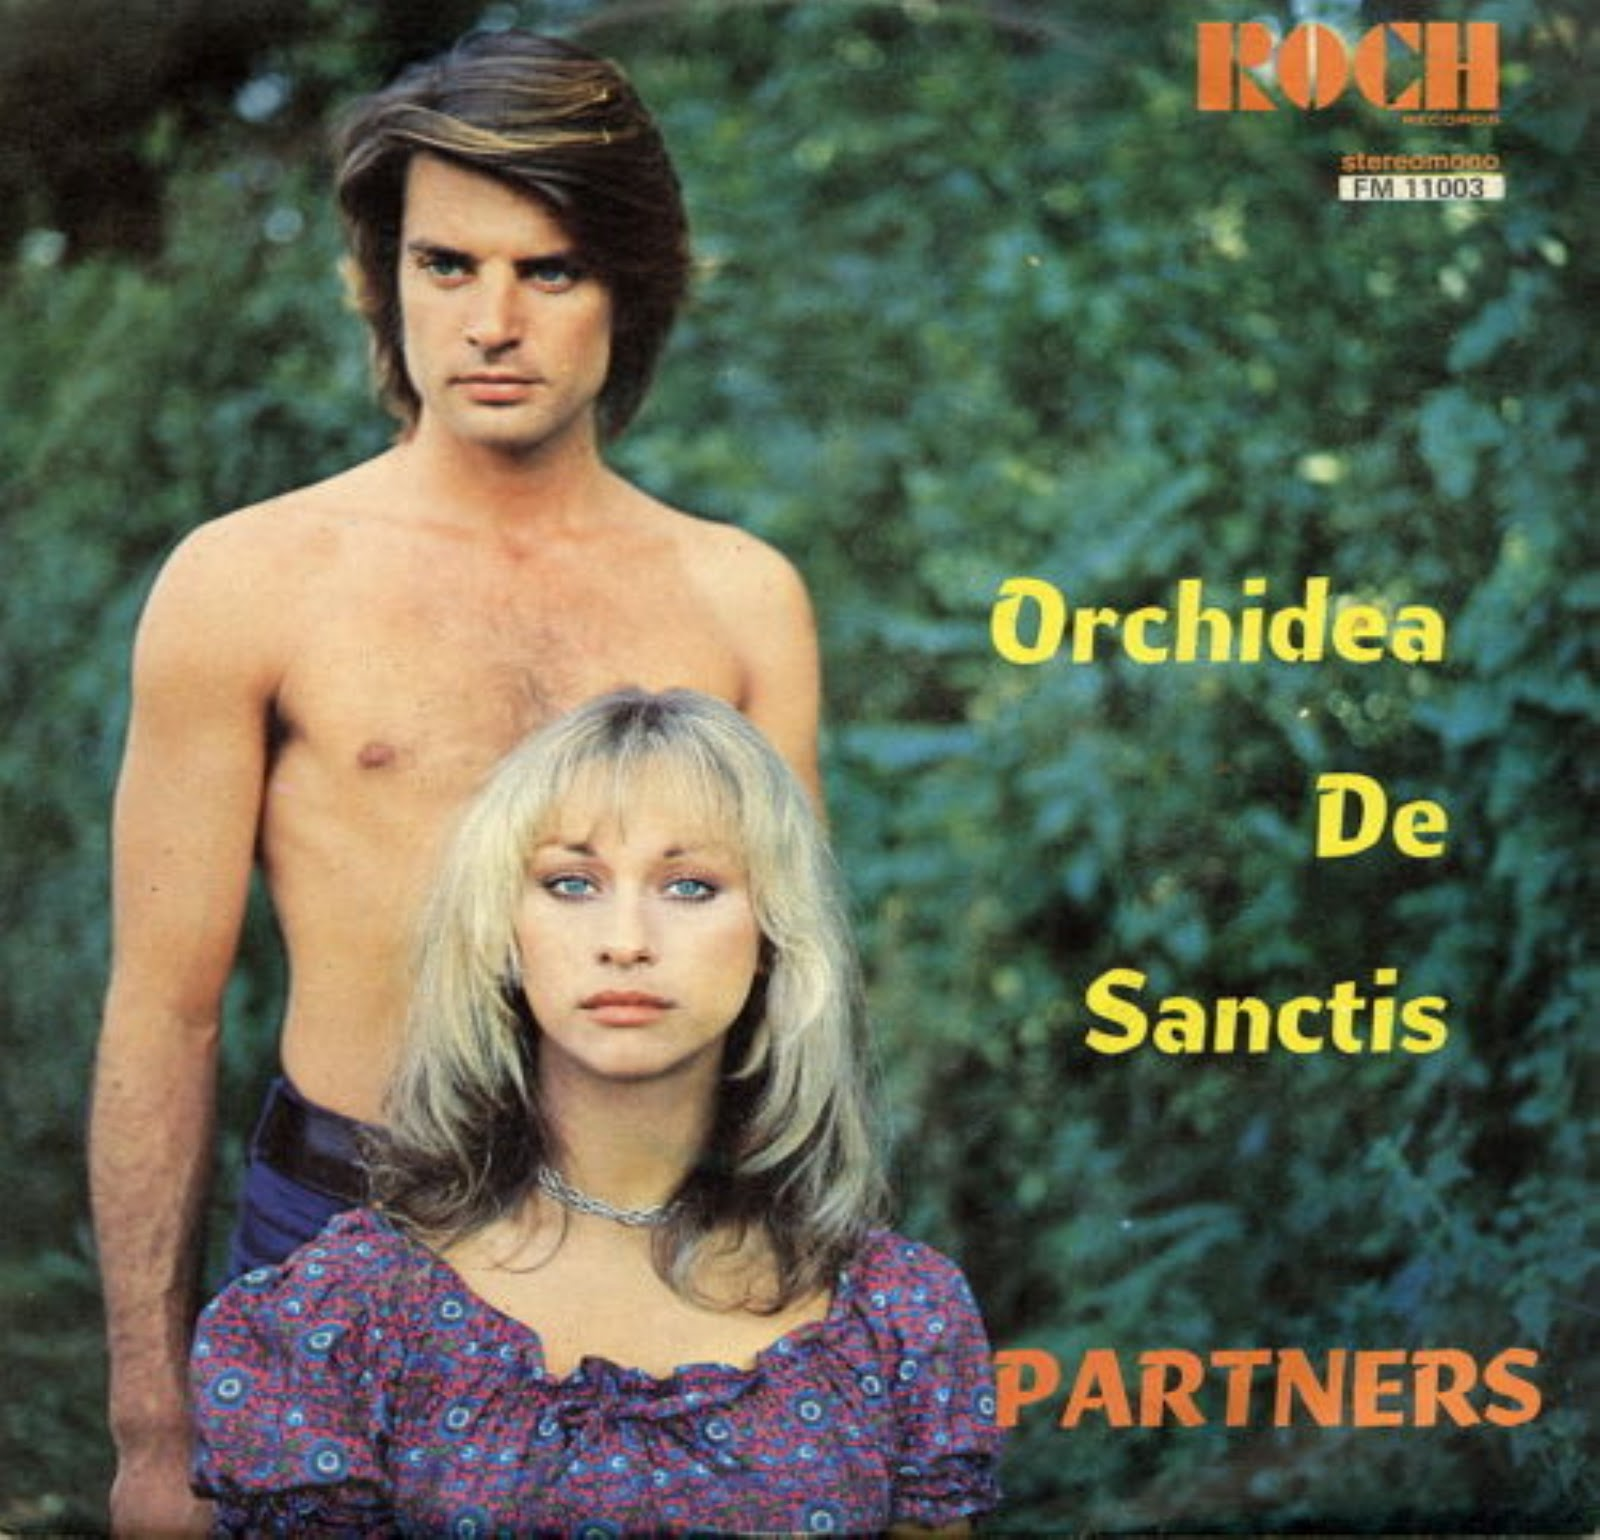 Orchidea De Santis (born 1948) Orchidea De Santis (born 1948) new pictures